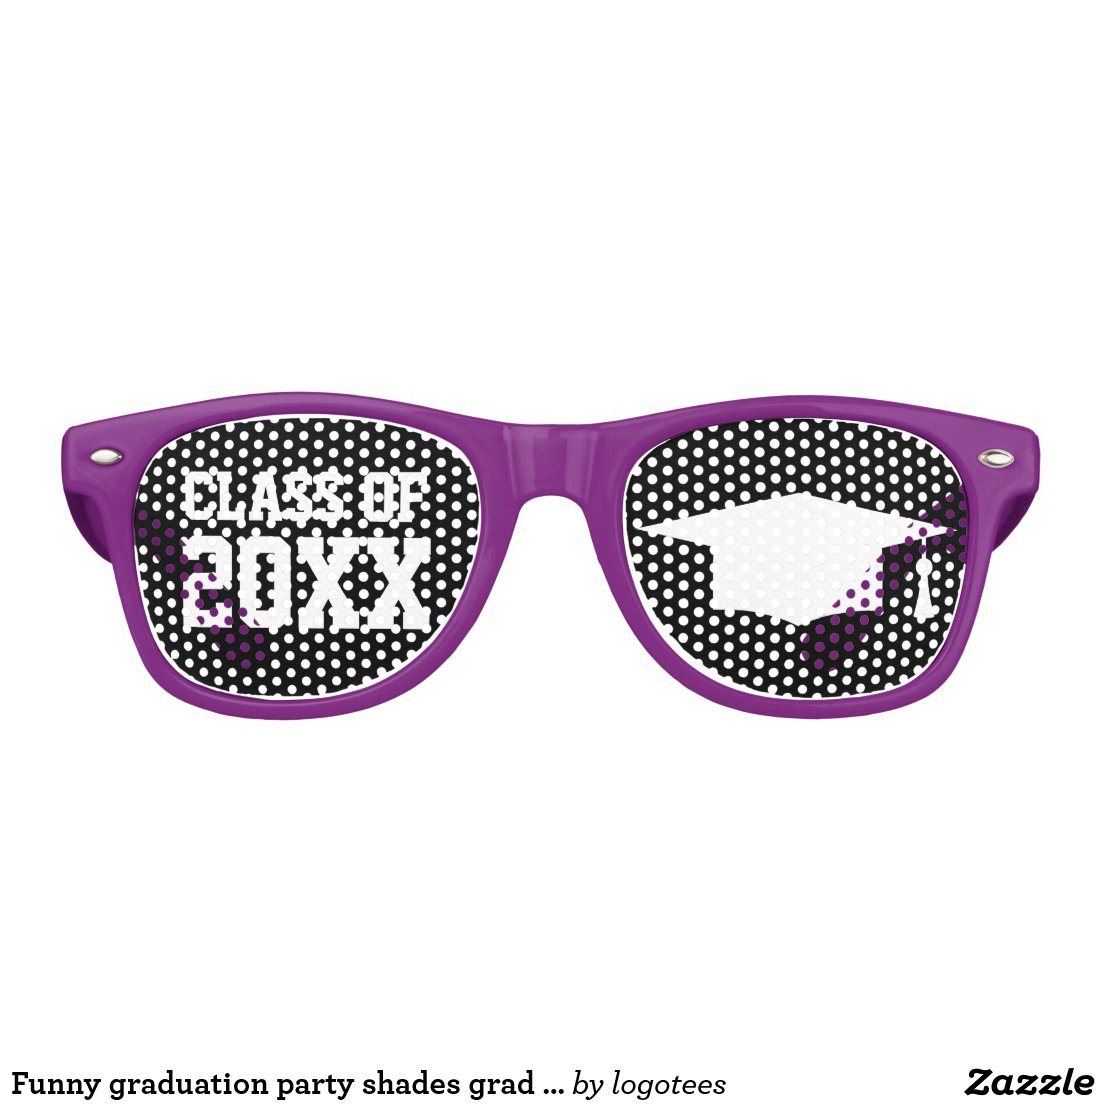 Funny graduation party shades for grad student